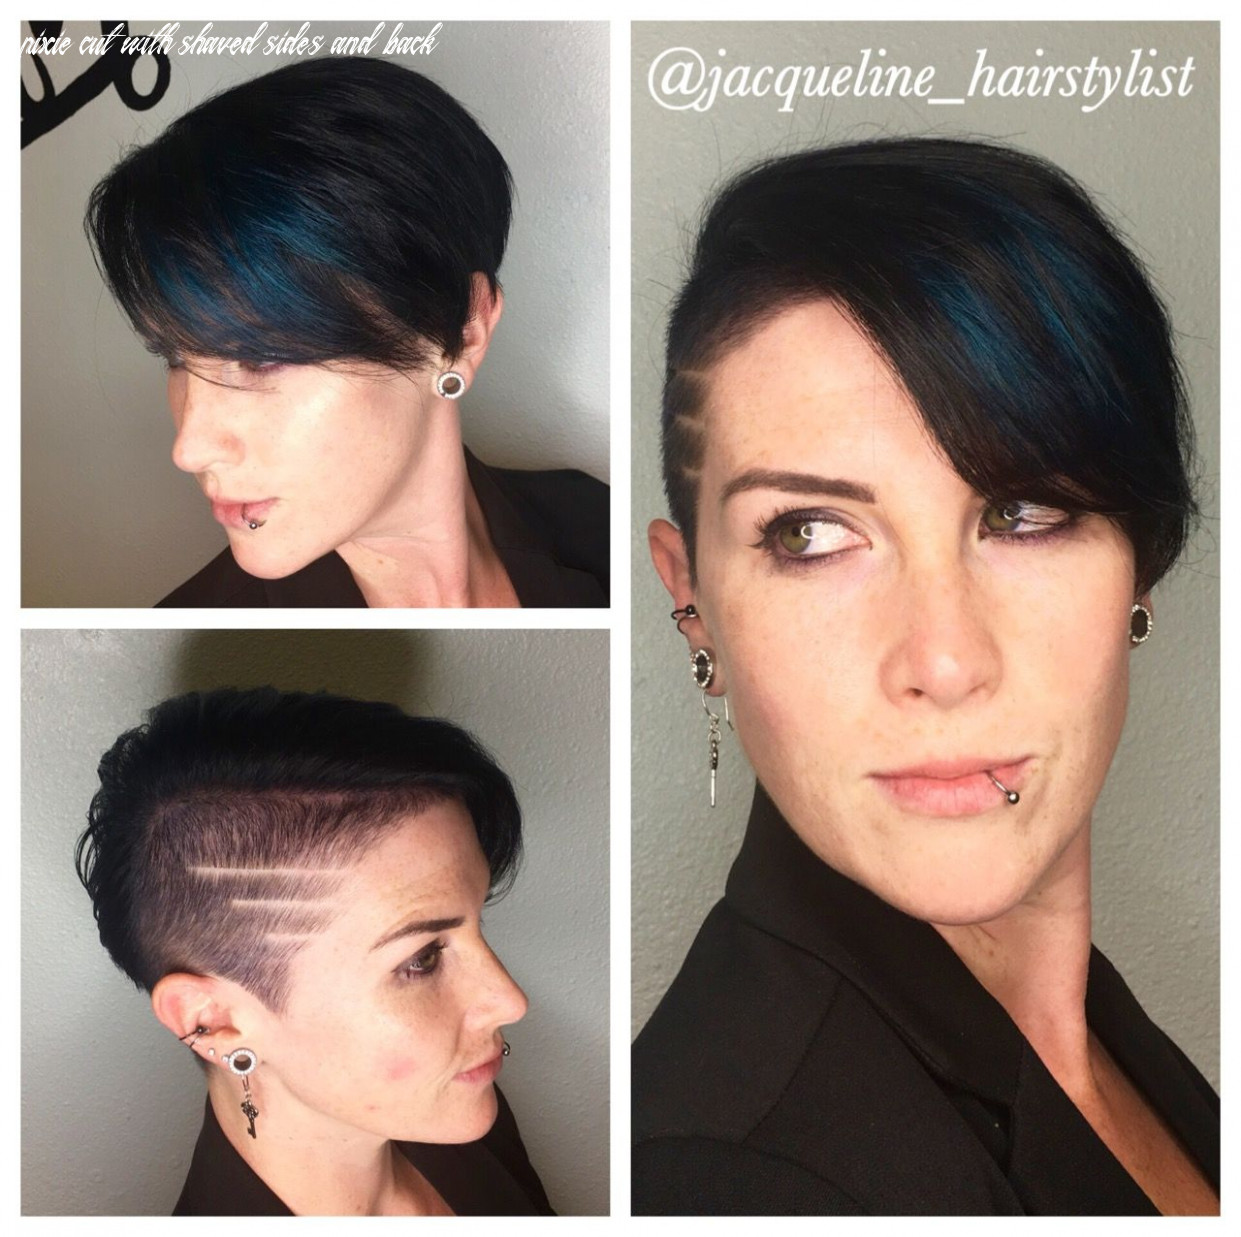 Pin on Jacqueline hairstylist